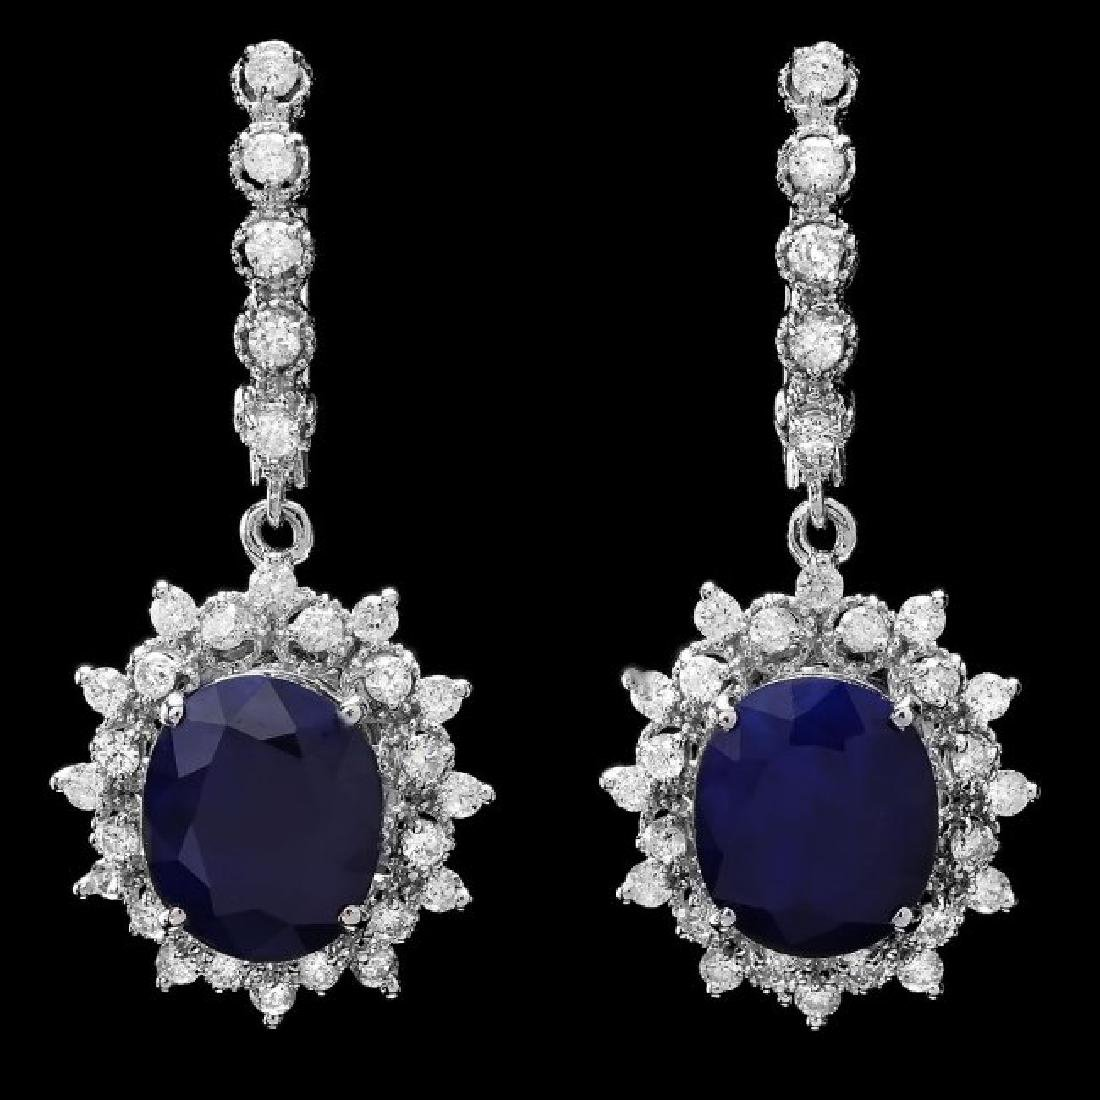 14k Gold 10ct Sapphire 1.65ct Diamond Earrings